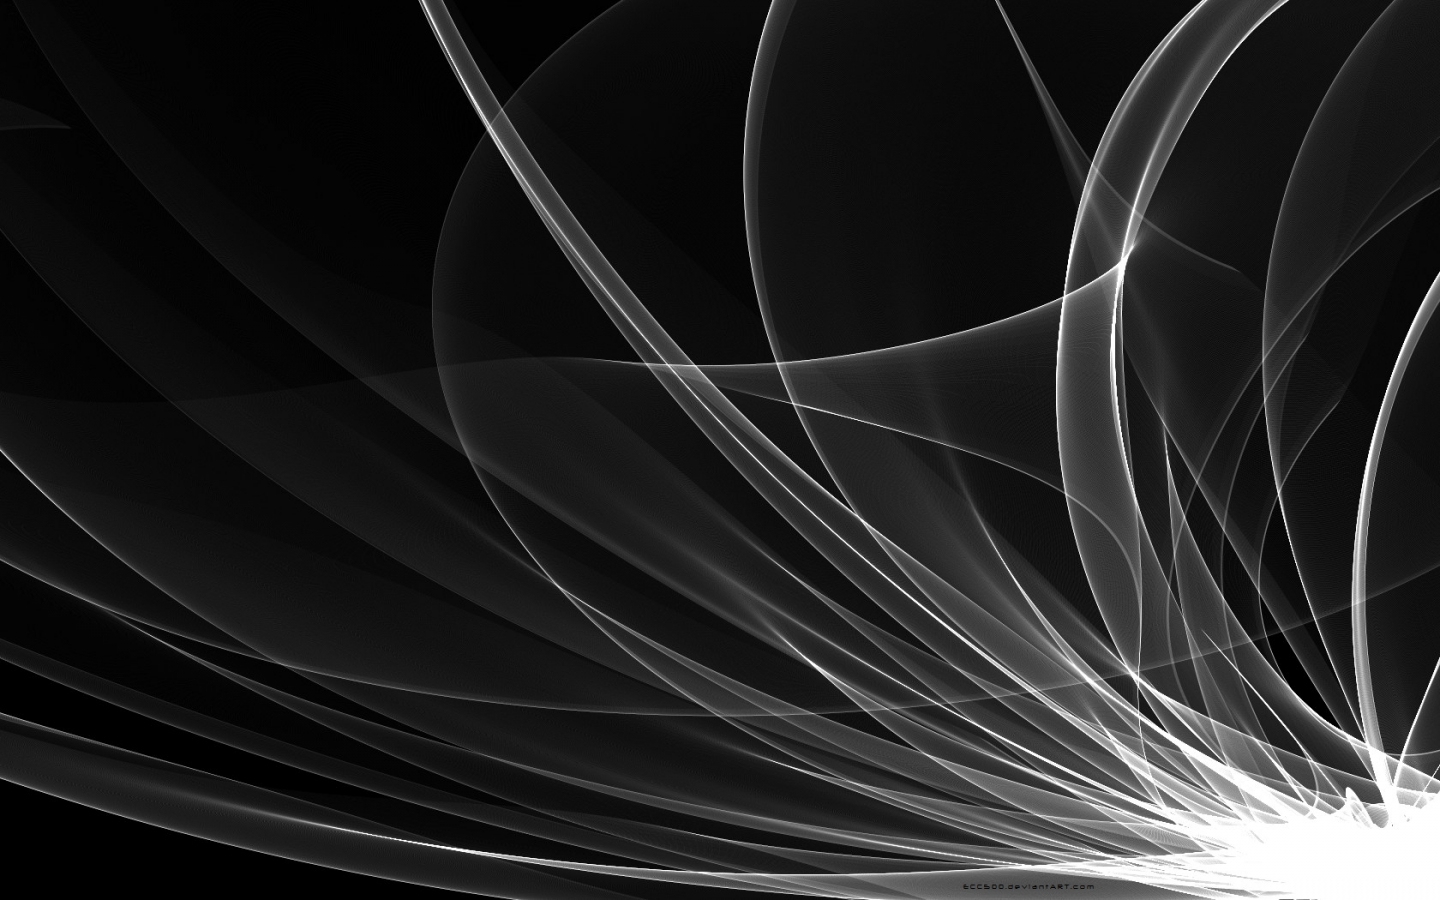 Black And White Abstract Backgrounds 1440x900